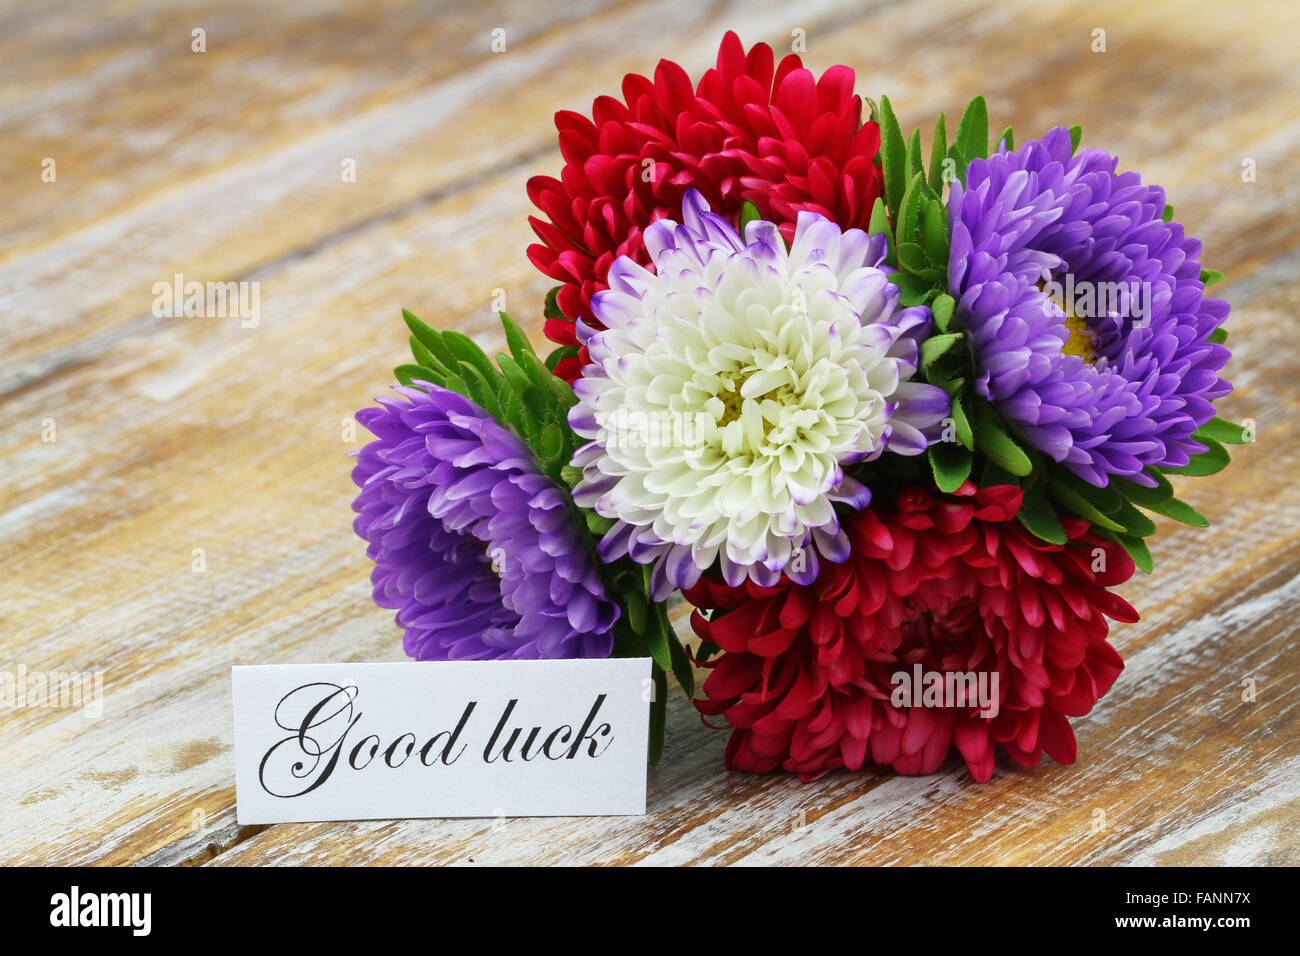 Good luck card with colorful aster flowers bouquet on rustic wooden good luck card with colorful aster flowers bouquet on rustic wooden surface izmirmasajfo